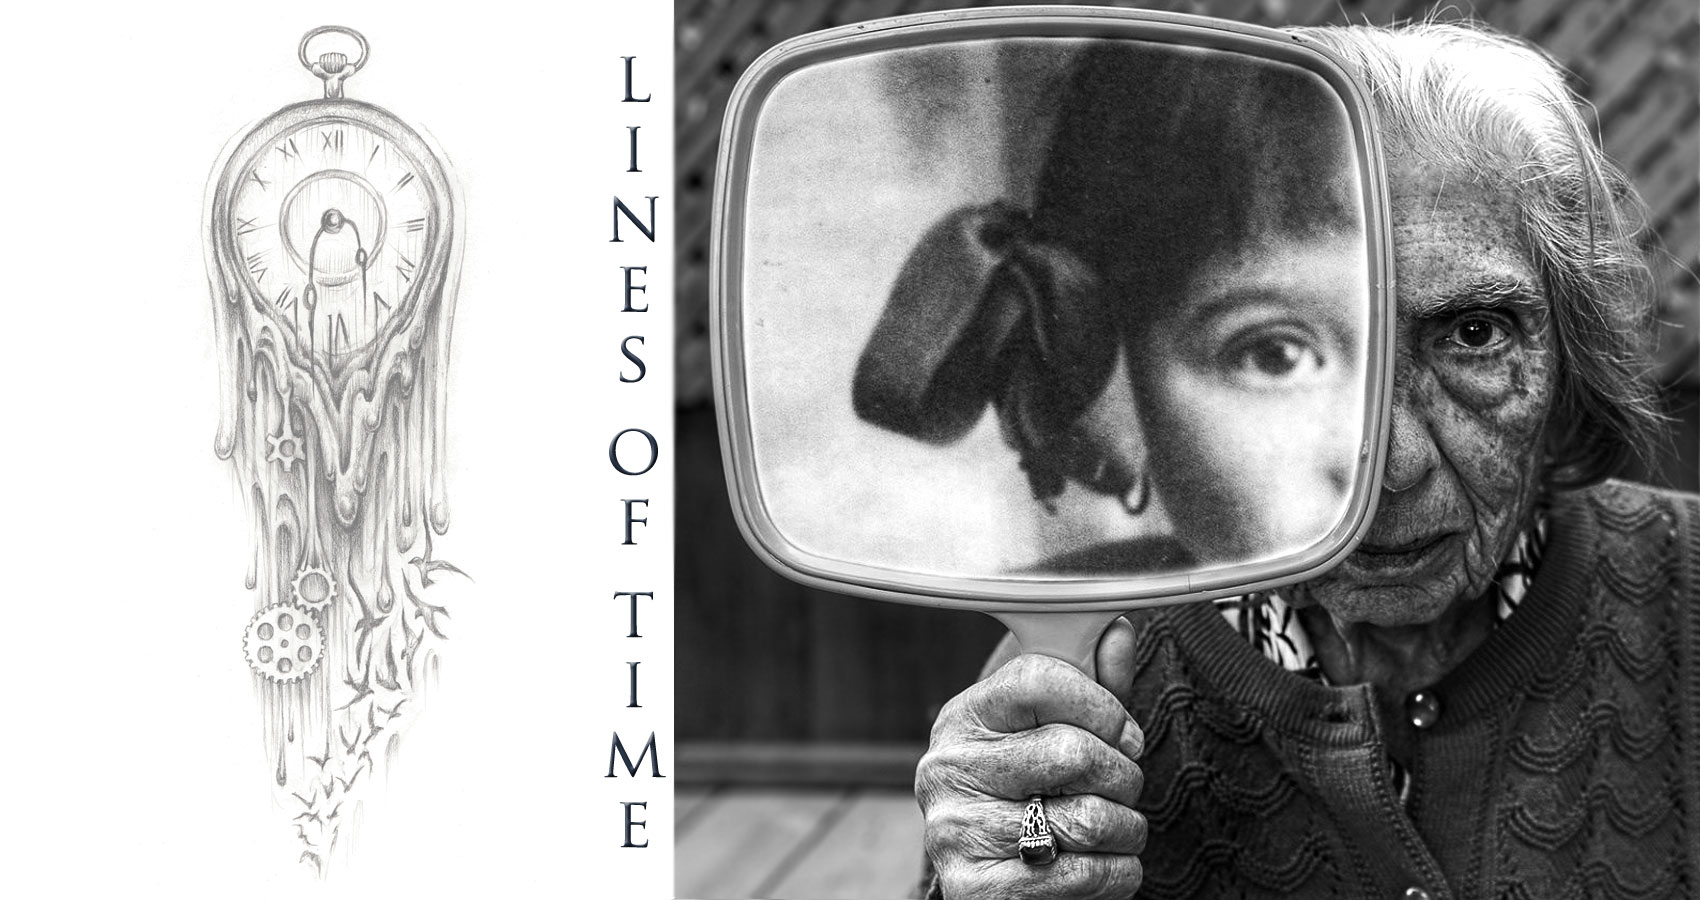 Lines Of Time written by AngelFace44 at Spillwords.com